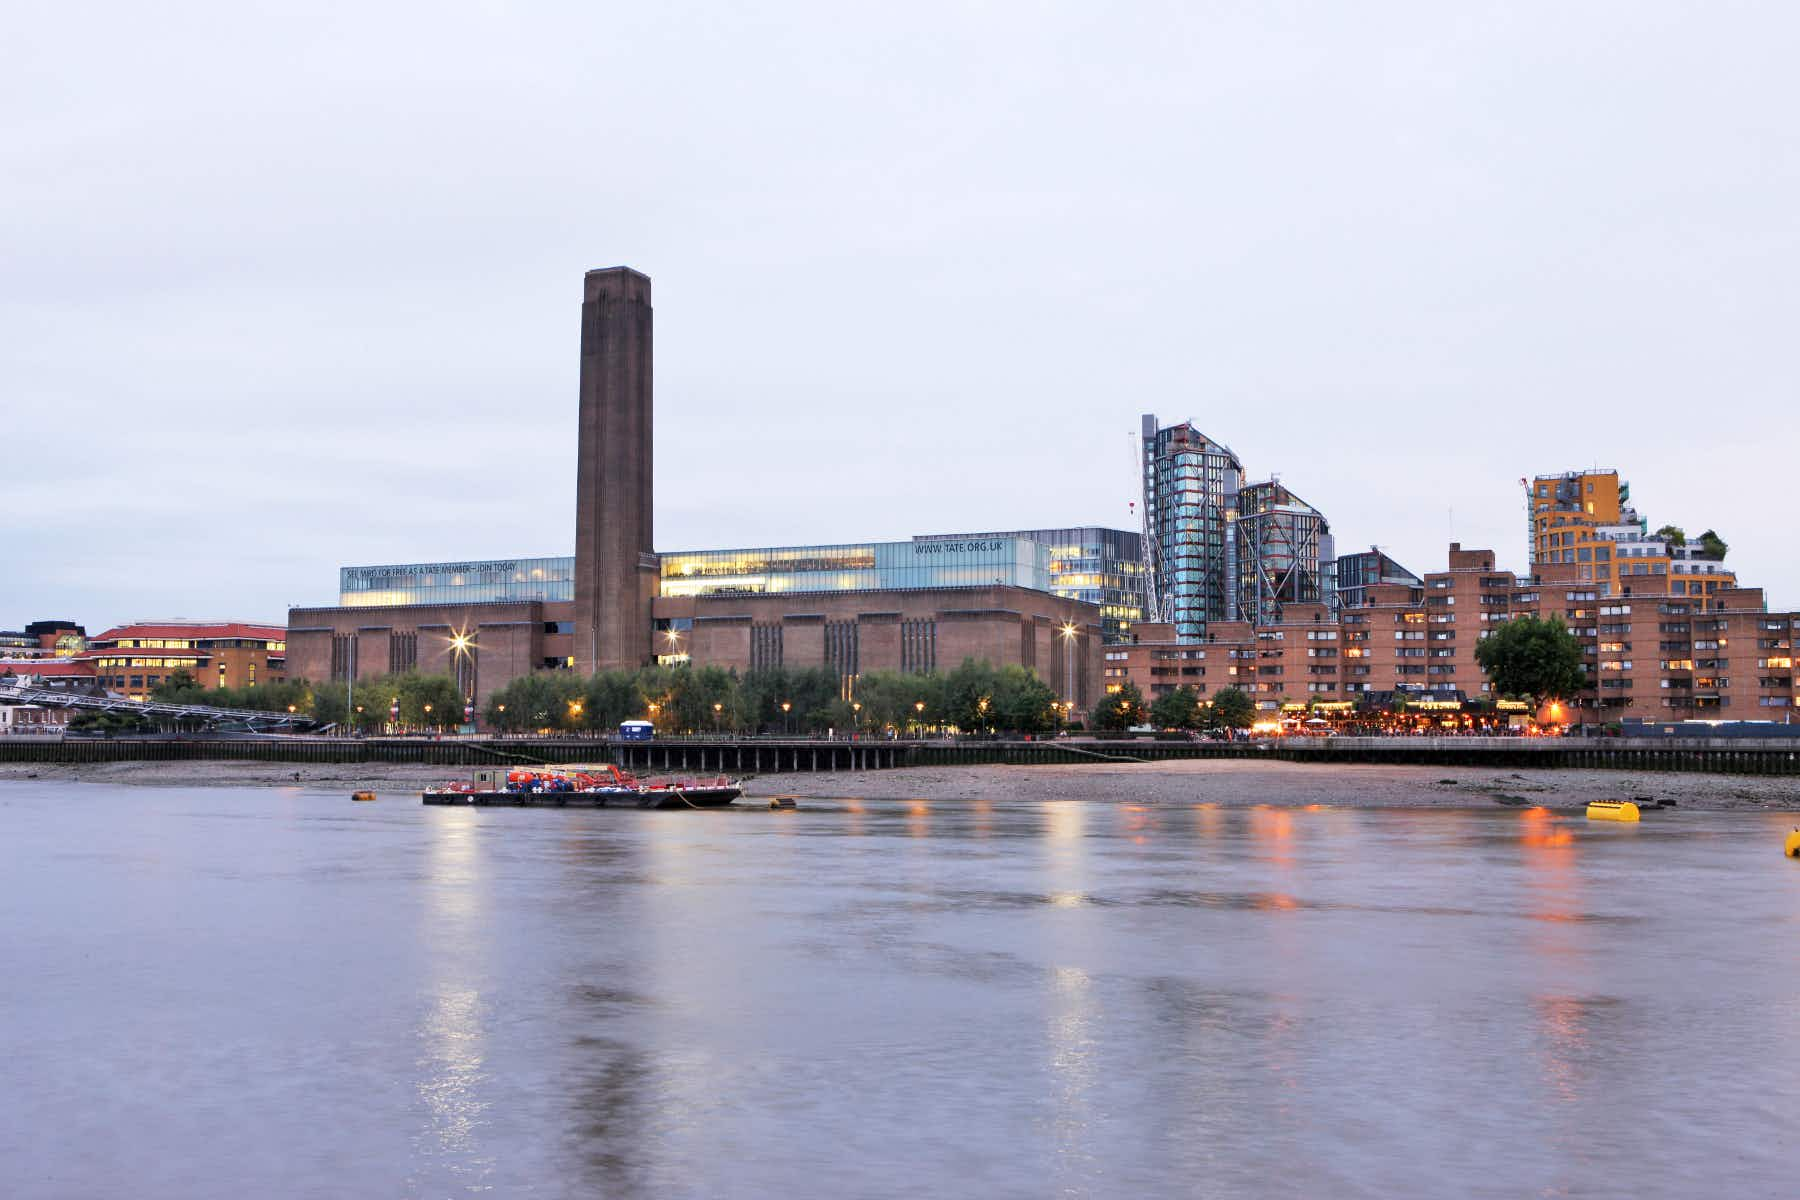 Why the Tate Modern encourages visitors to take a 'slow look' at art